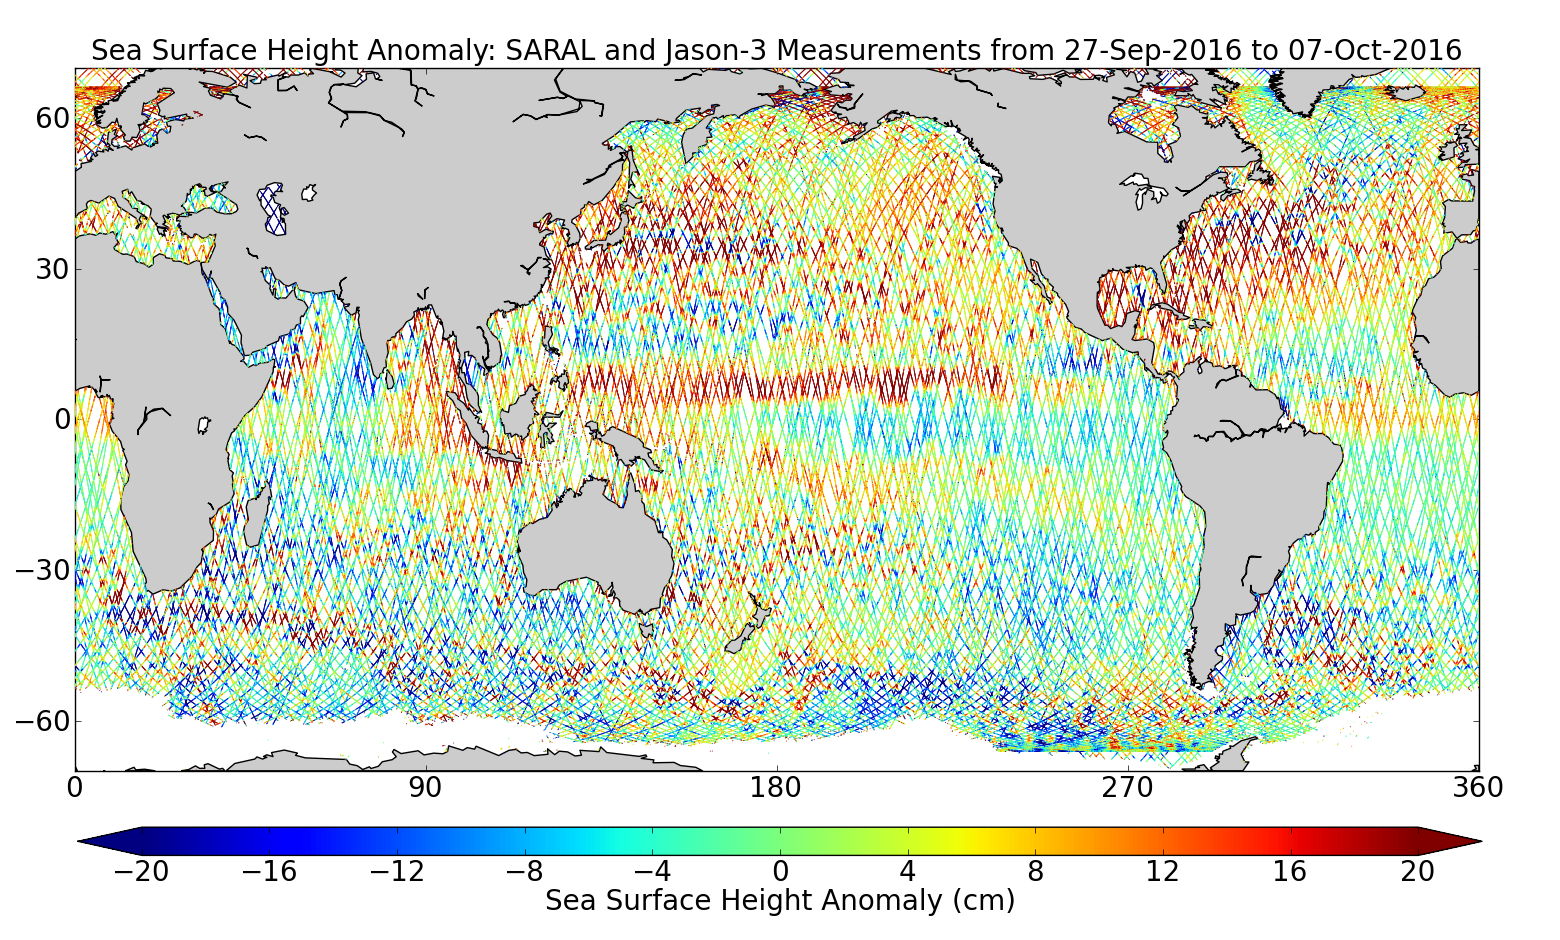 Sea Surface Height Anomaly: SARAL and Jason-3 Measurements from 27-Sep-2016 to 07-Oct-2016